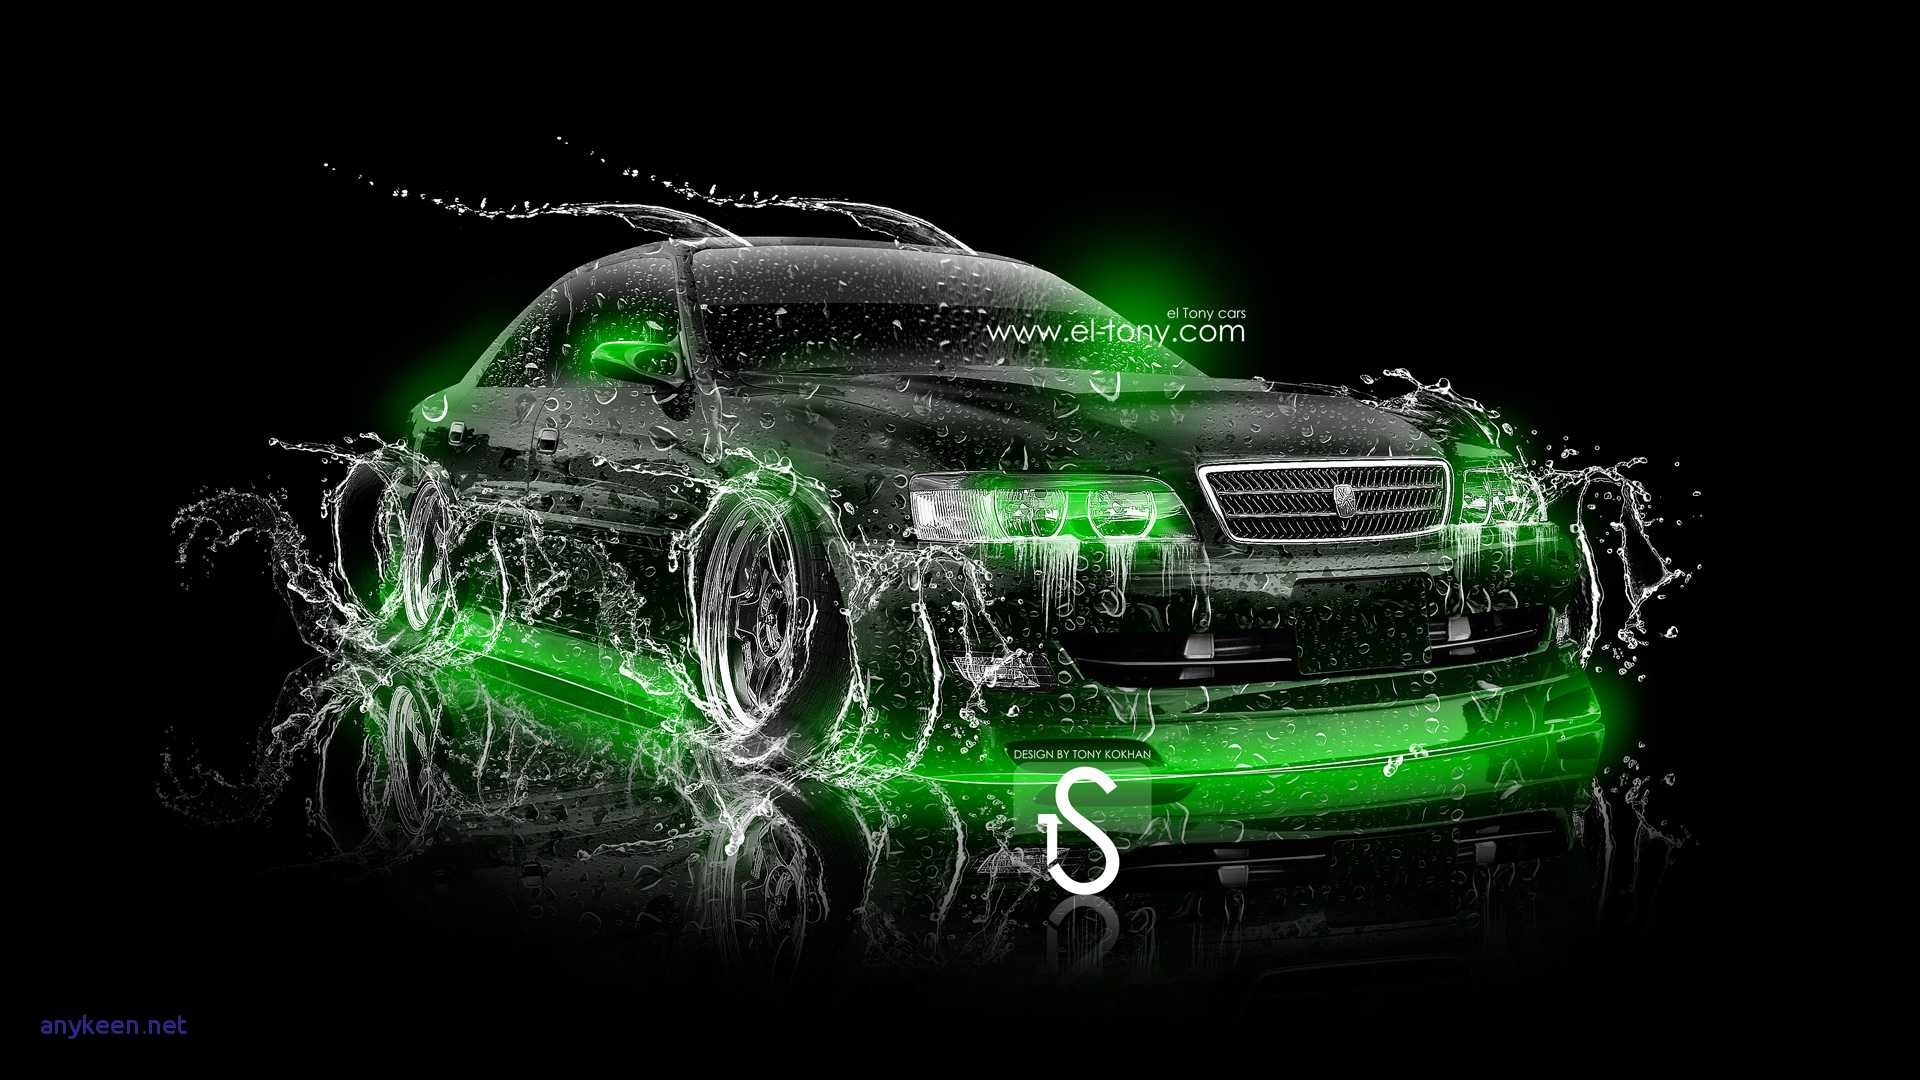 1920x1080 Free Neon Green Wallpaper High Quality Long Wallpapers New Of Cars Hd